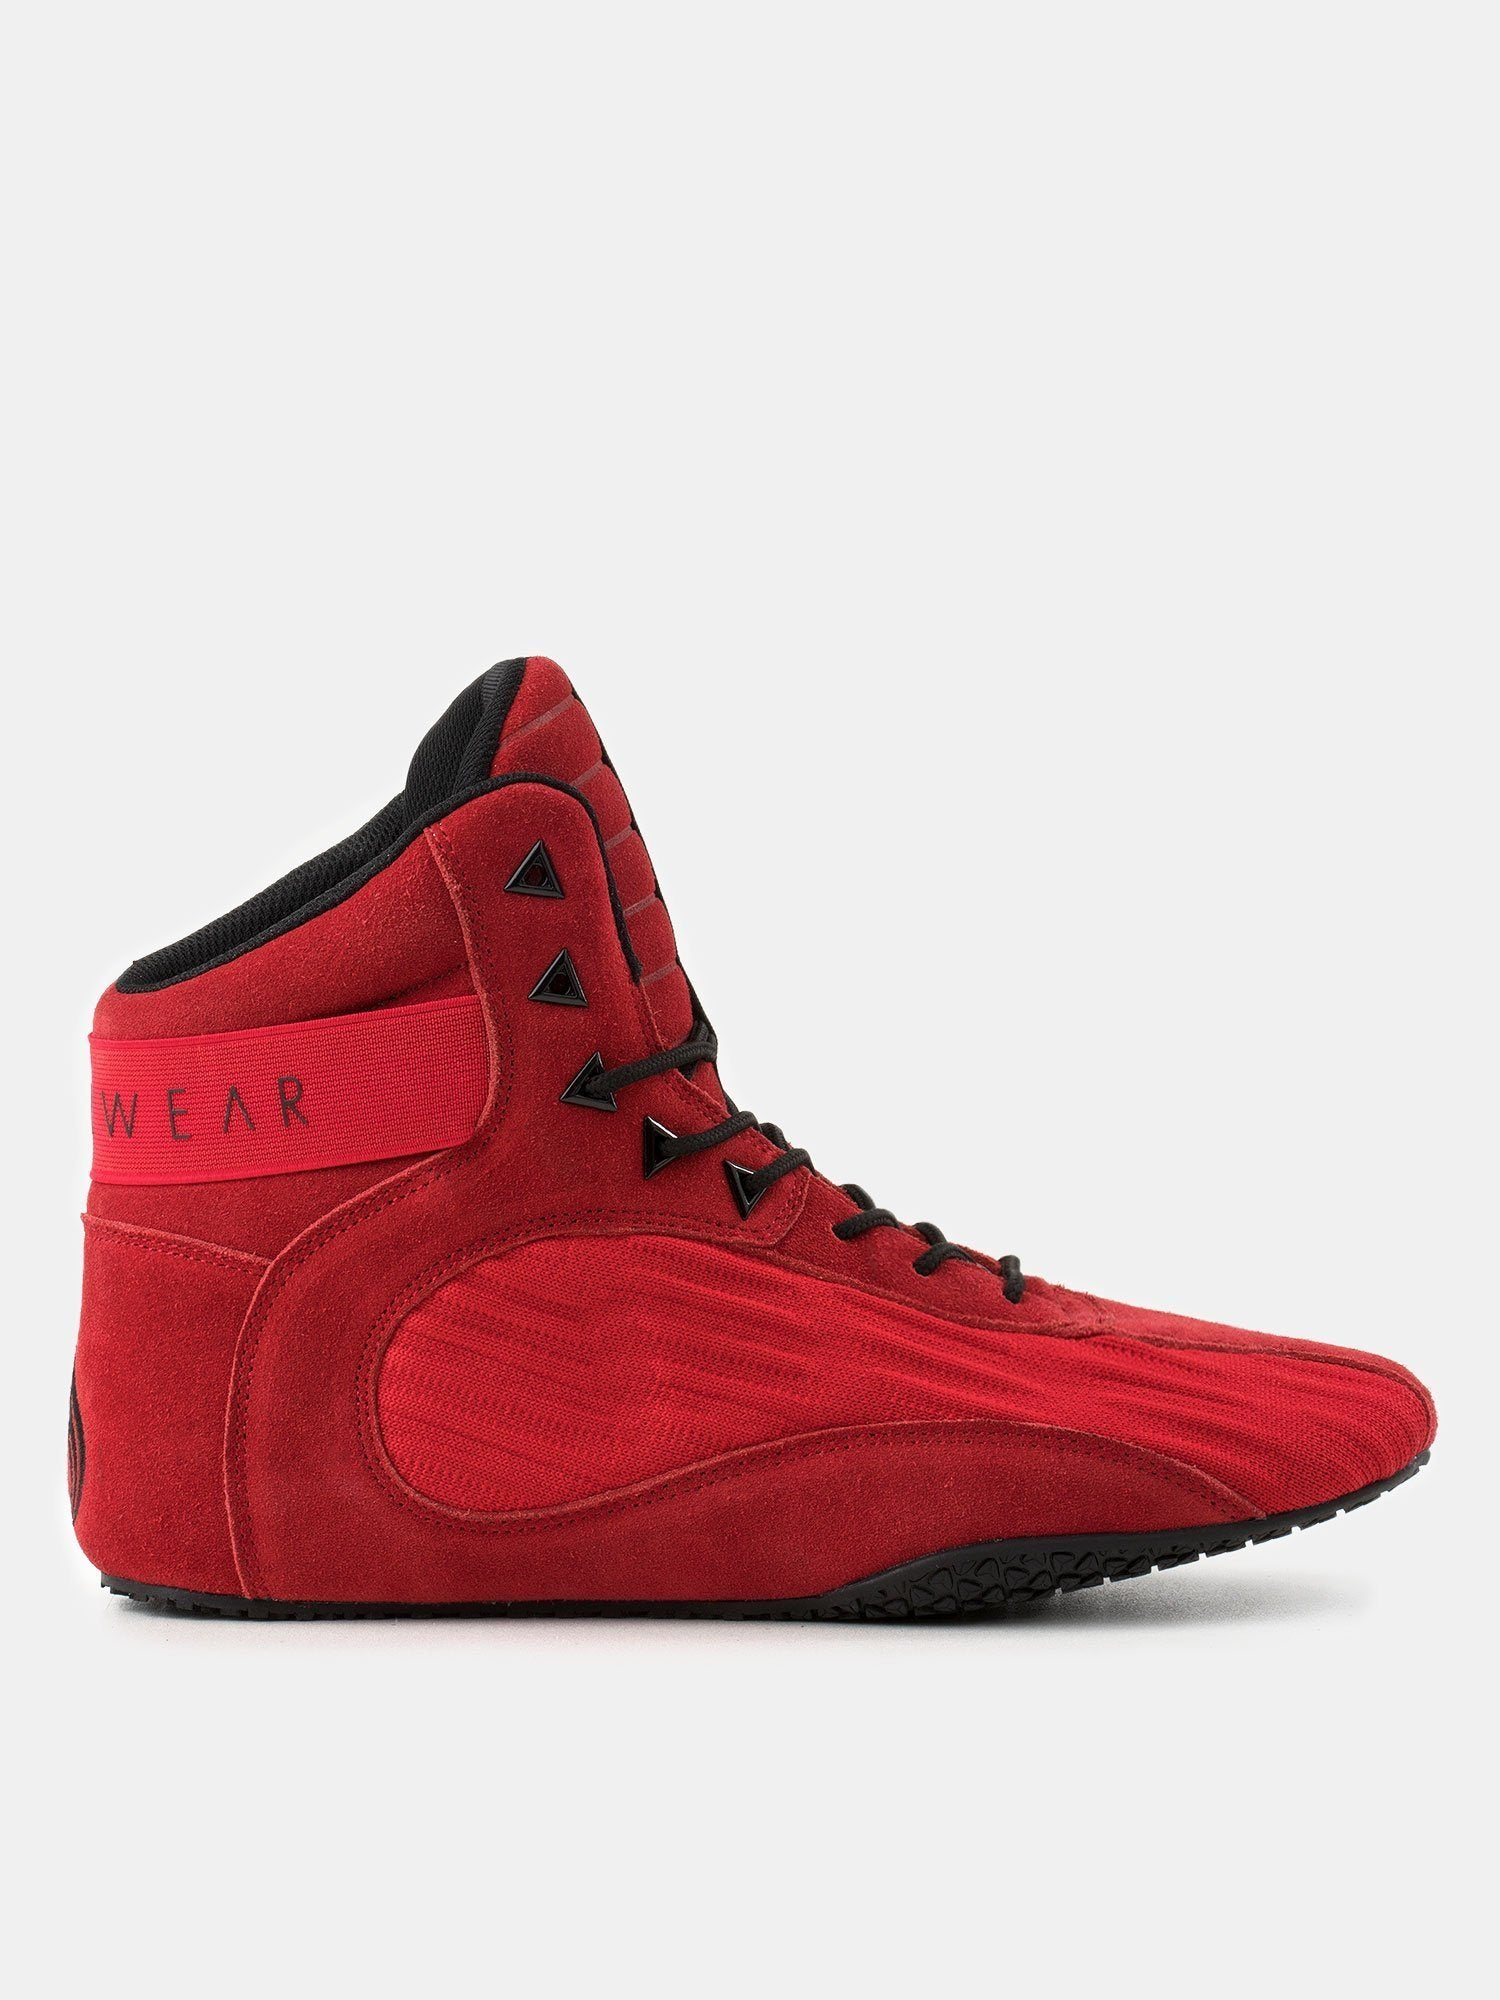 Ryder Wear D-Mak II Lifting Shoe - Red